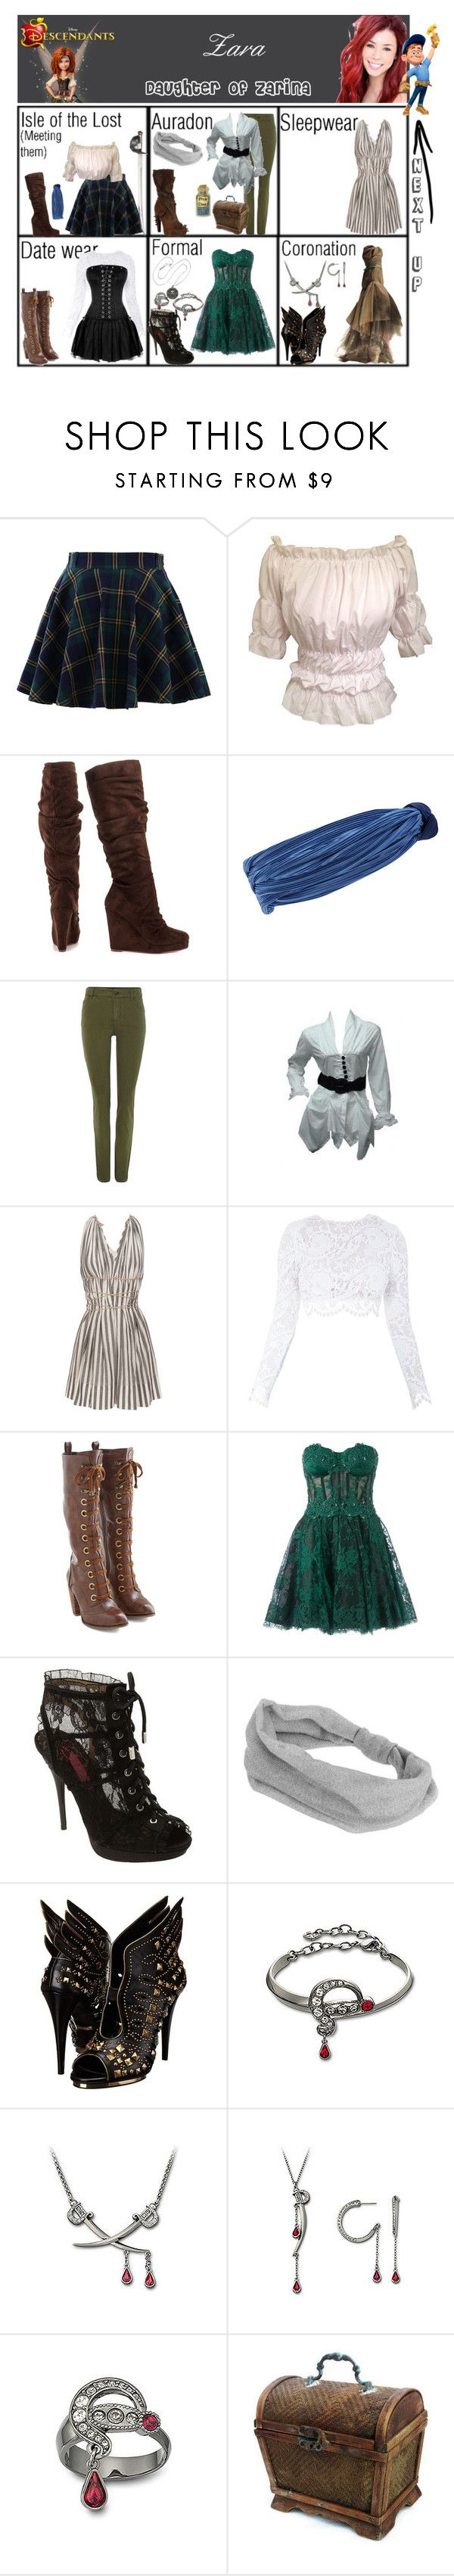 """Zara. Daughter of Zarina. Next up: Fix-It Felix Jr"" by elmoakepoke ❤ liked on Polyvore featuring Chicwish, Michael Antonio, Eugenia Kim, Oui, 3.1 Phillip Lim, Stone_Cold_Fox, Dr. Martens, Zuhair Murad, Betsey Johnson and Topshop"